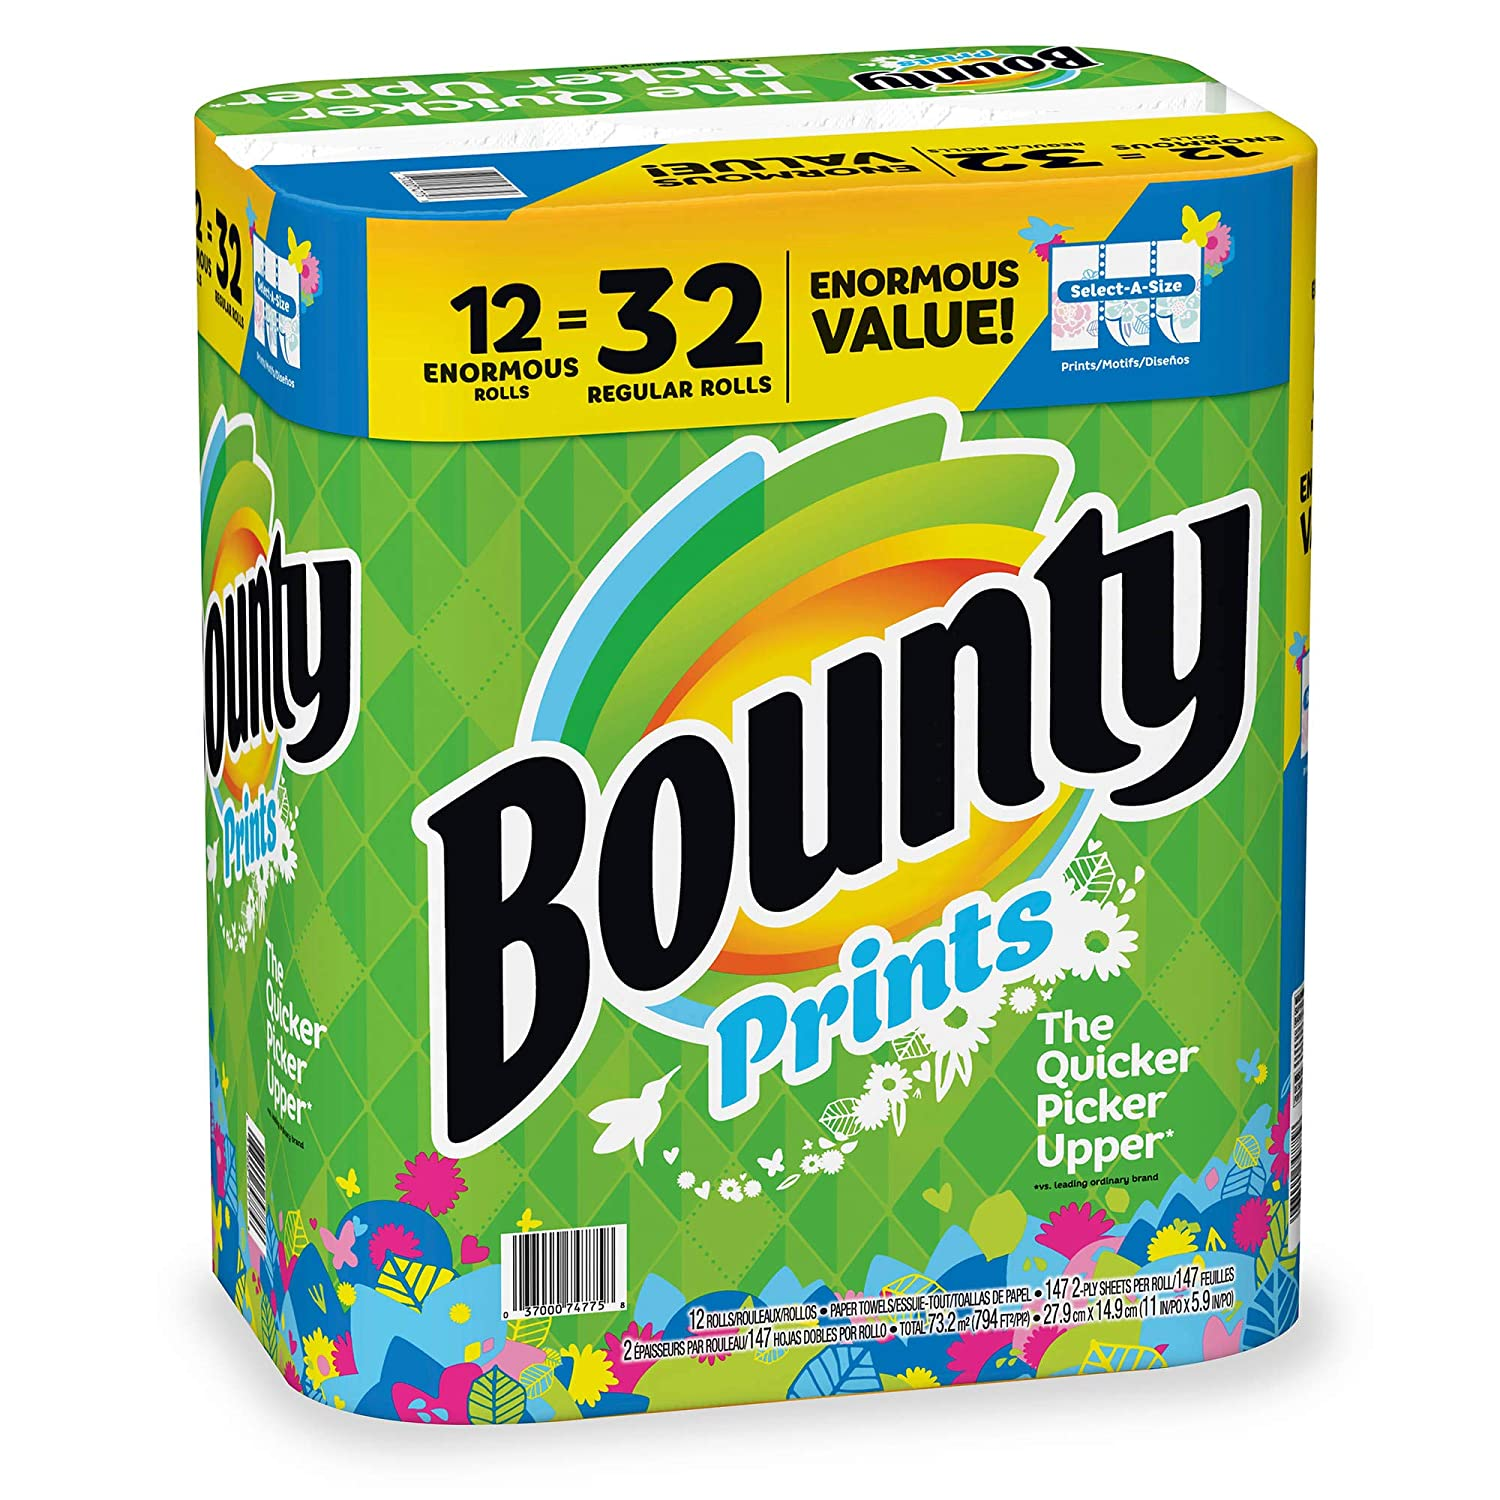 Amazon.com: Bountys Select-A-Size Enormous Roll Paper Towels, 12 pk. - Print: Kitchen & Dining